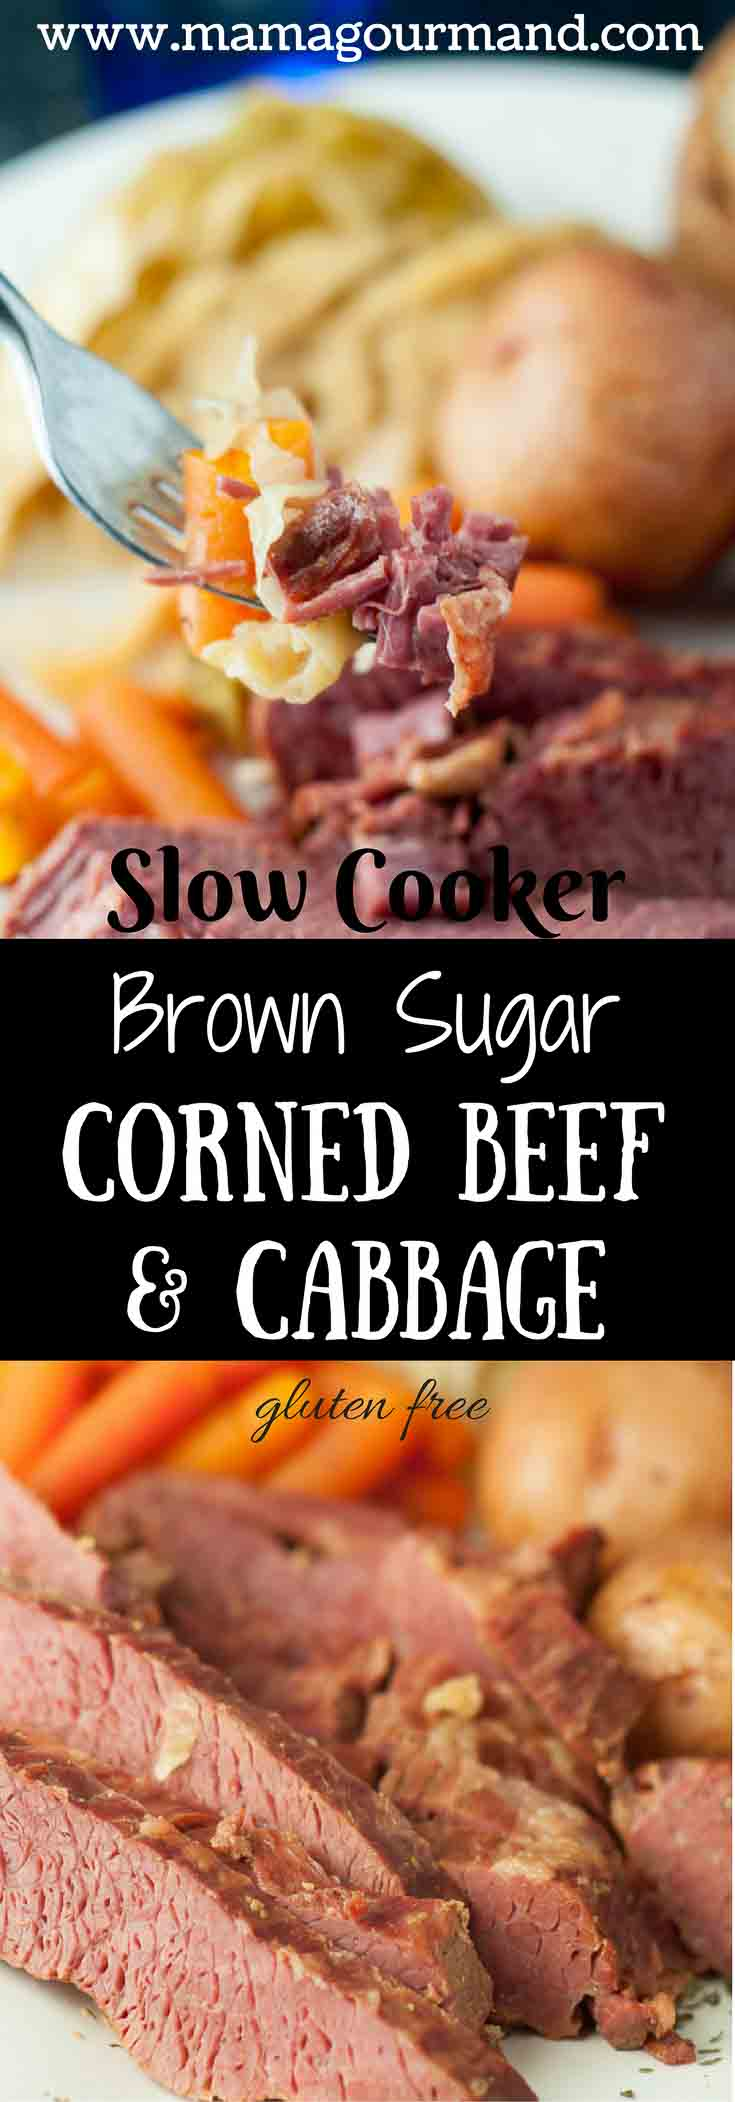 This Slow Cooker Apple and Brown Sugar Corned Beef and Cabbage cooks in apple juice, brown sugar, and spicy mustard. Not only is it the best ever corned beef and cabbage, but it takes no time or effort to throw together and it cooks by itself in the crockpot! #cornedbeefandcabbage #cornedbeef #slowcookercornebeef #stpatricksday #irishmeal https://www.mamagourmand.com